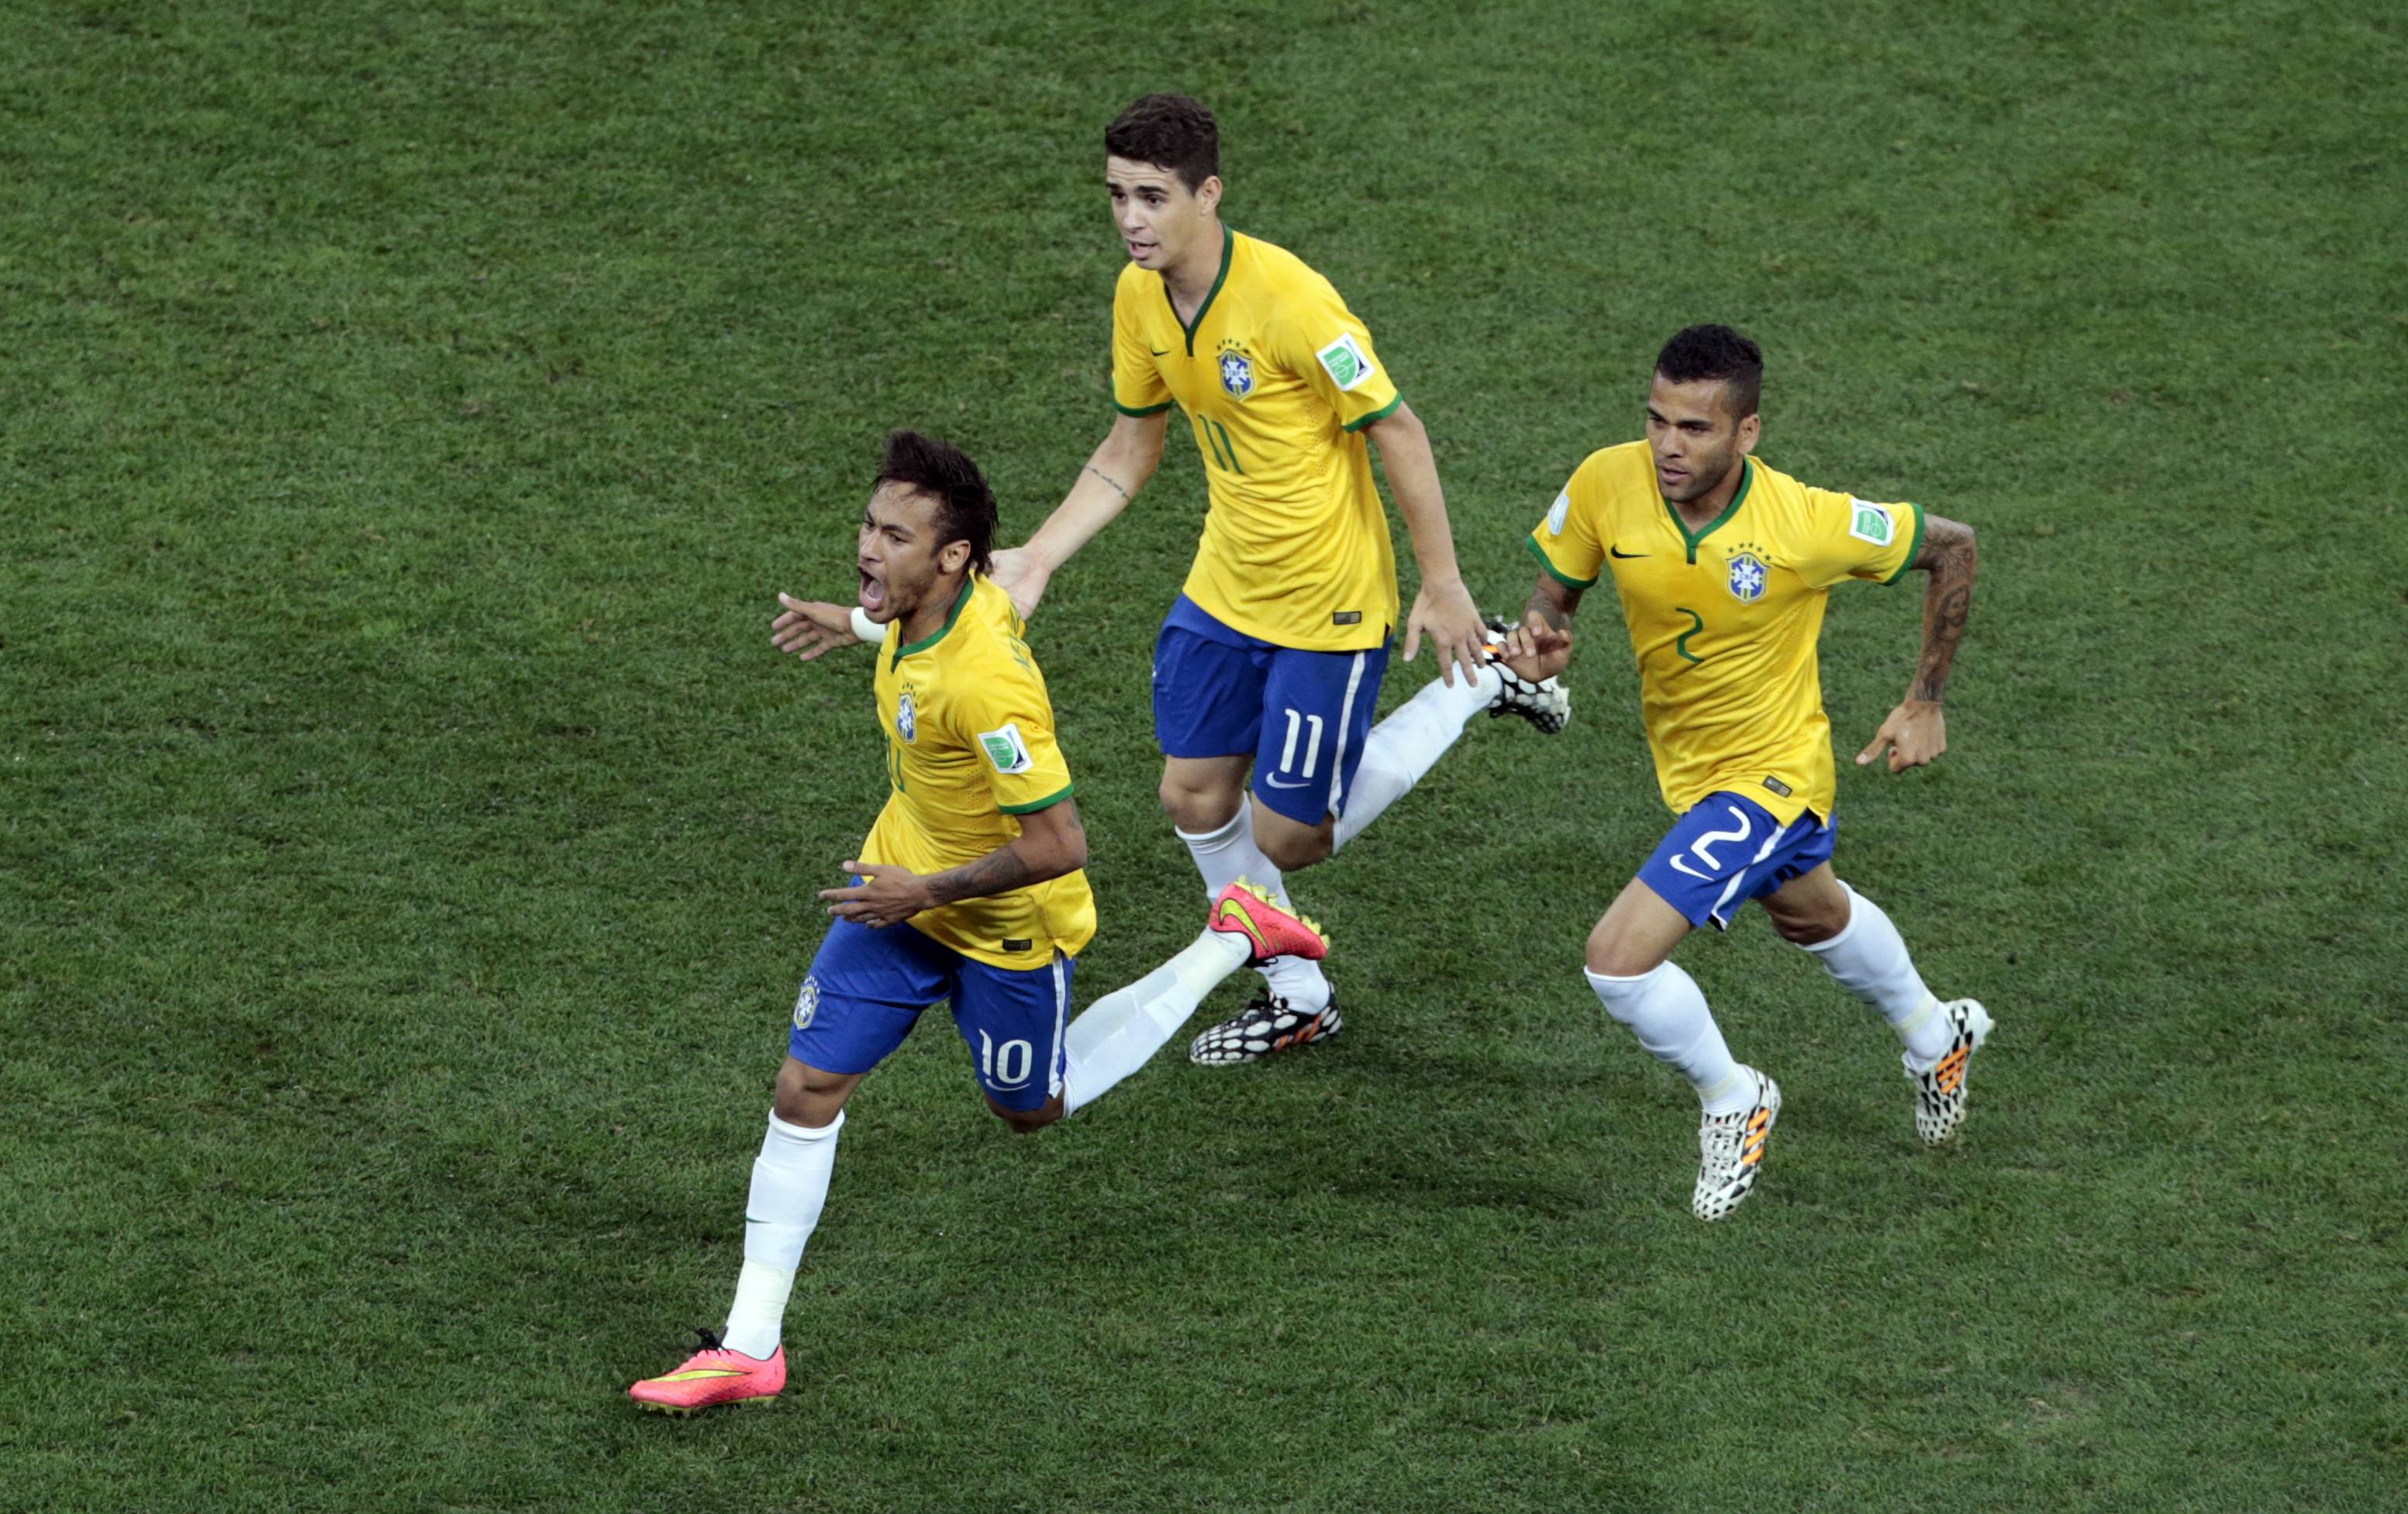 Brazil's Neymar, left, celebrates scoring his side's first goal during the group A World Cup soccer match between Brazil and Croatia, the opening game of the tournament, in the Itaquerao Stadium in Sao Paulo.